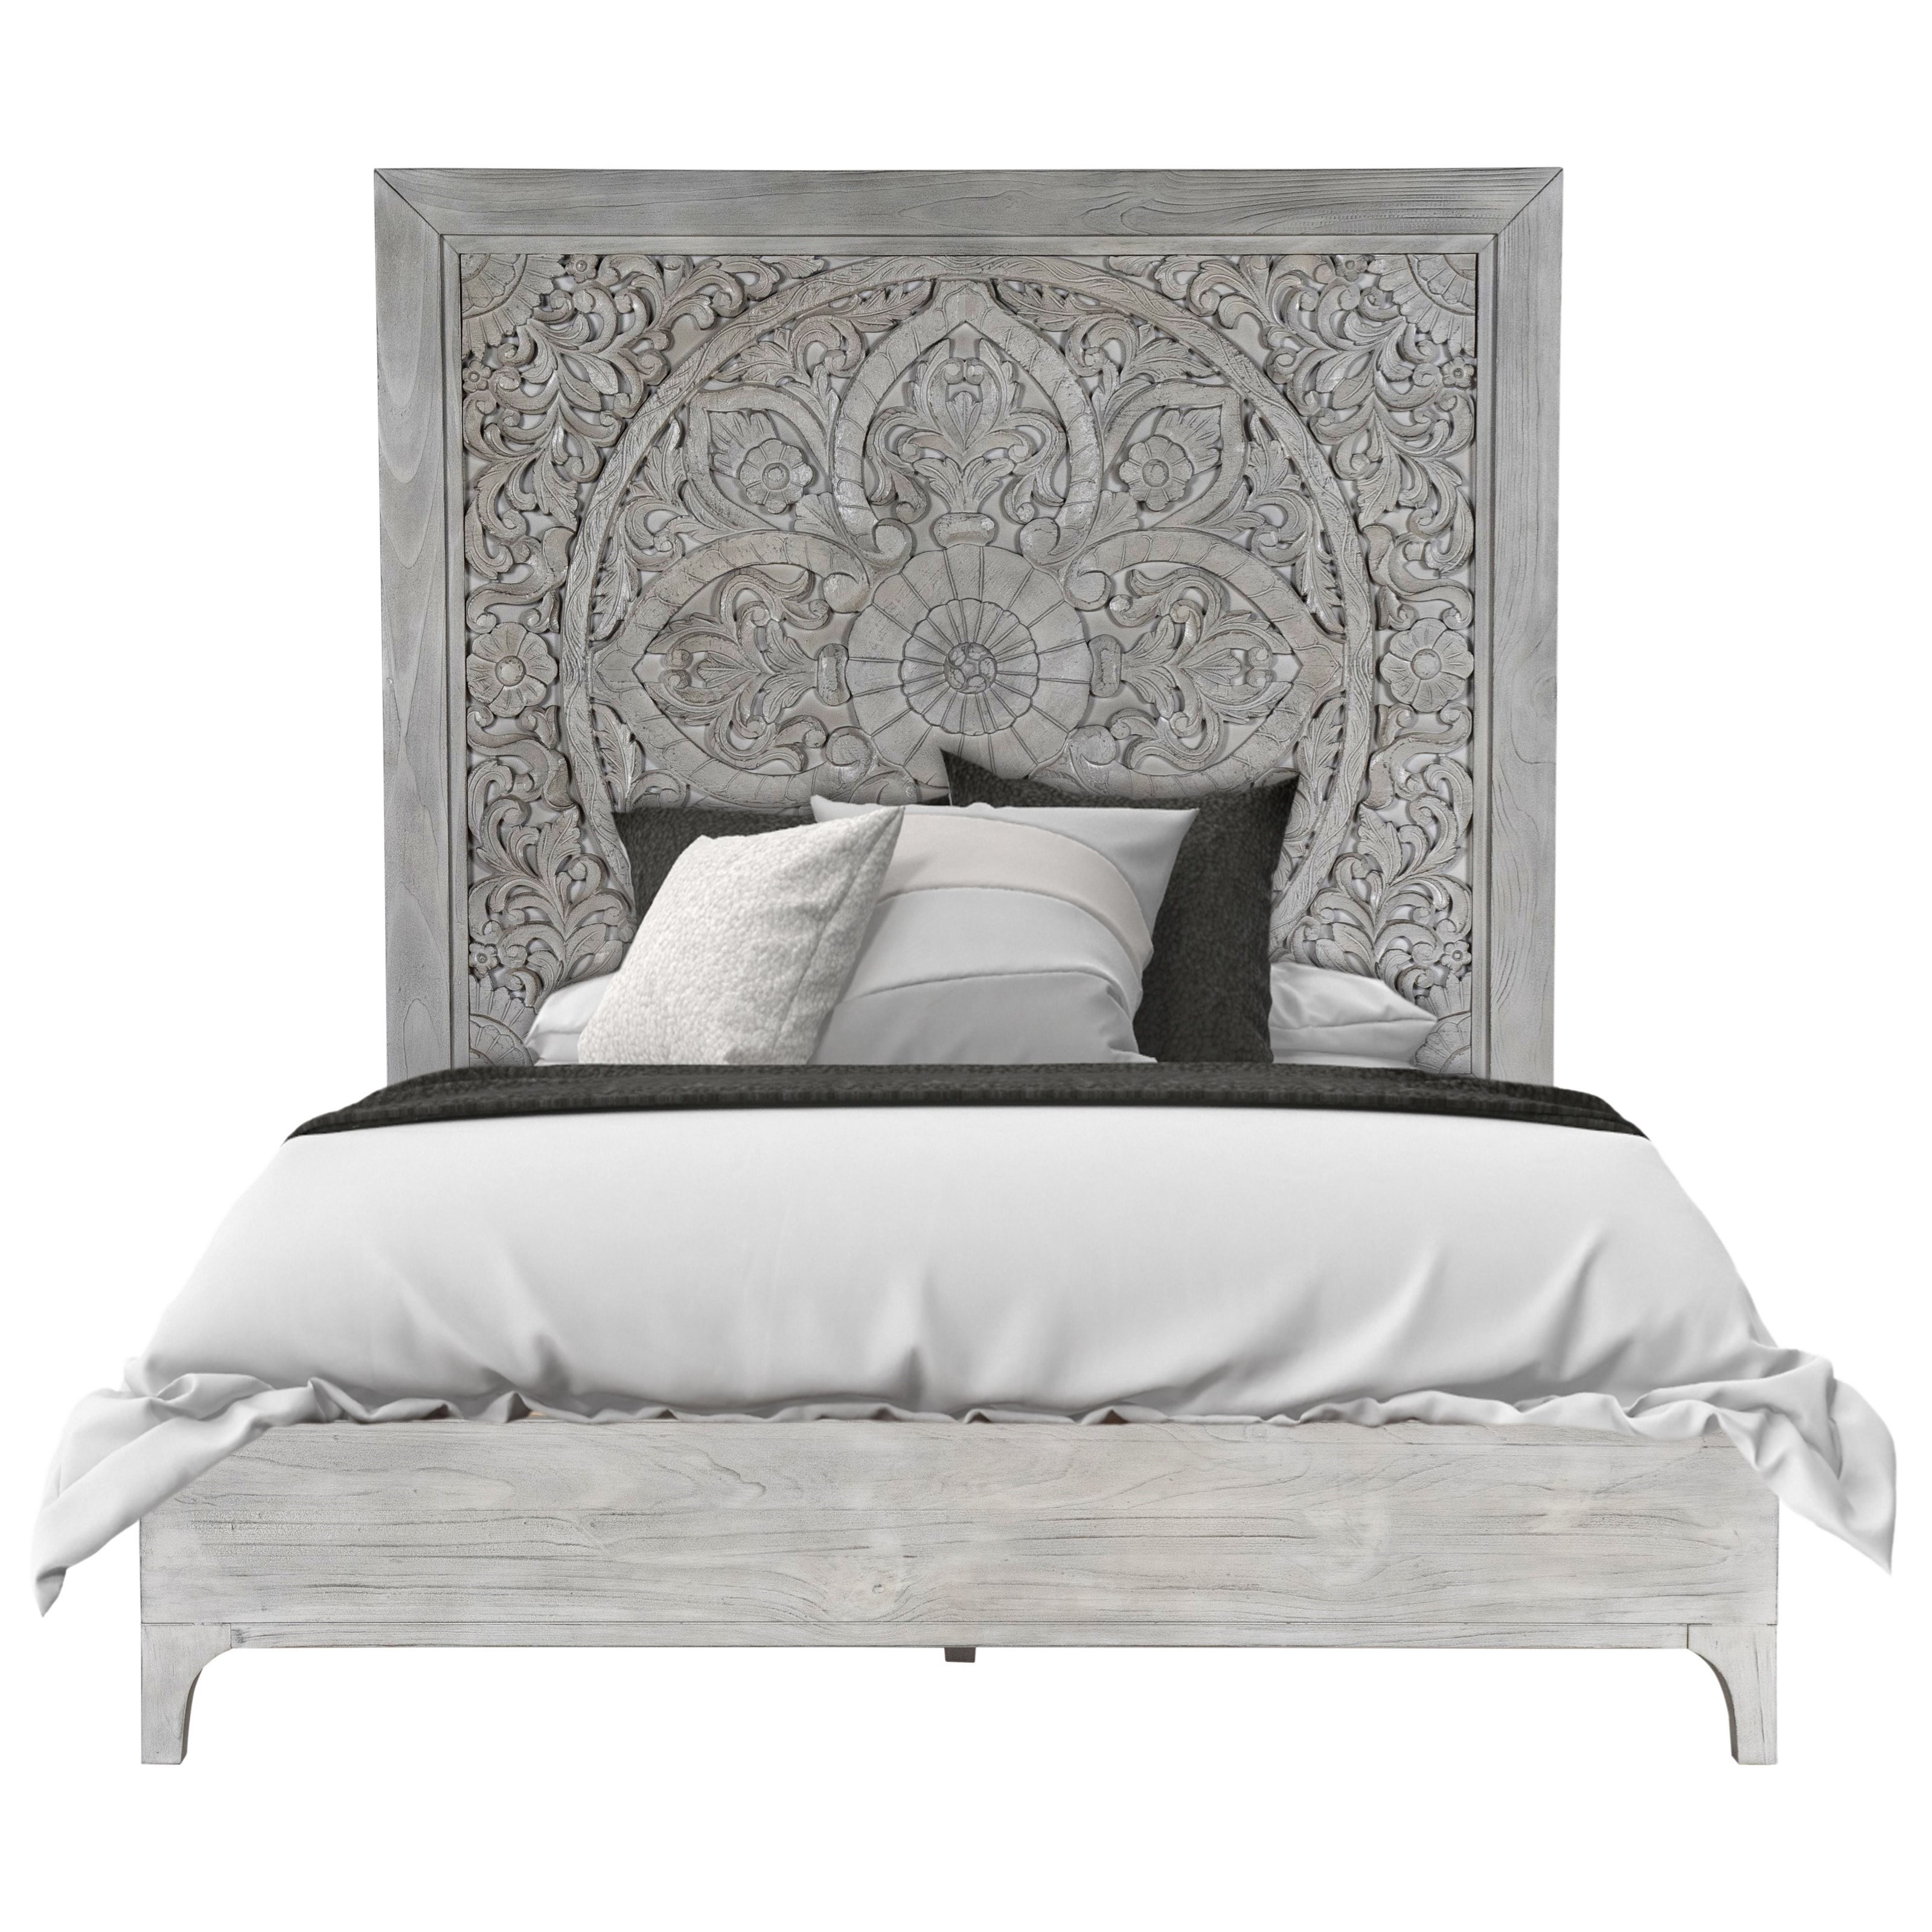 Modus International Boho Chic King Platform Bed In Washed White With Intricate Headboard A1 Furniture Mattress Platform Beds Low Profile Beds